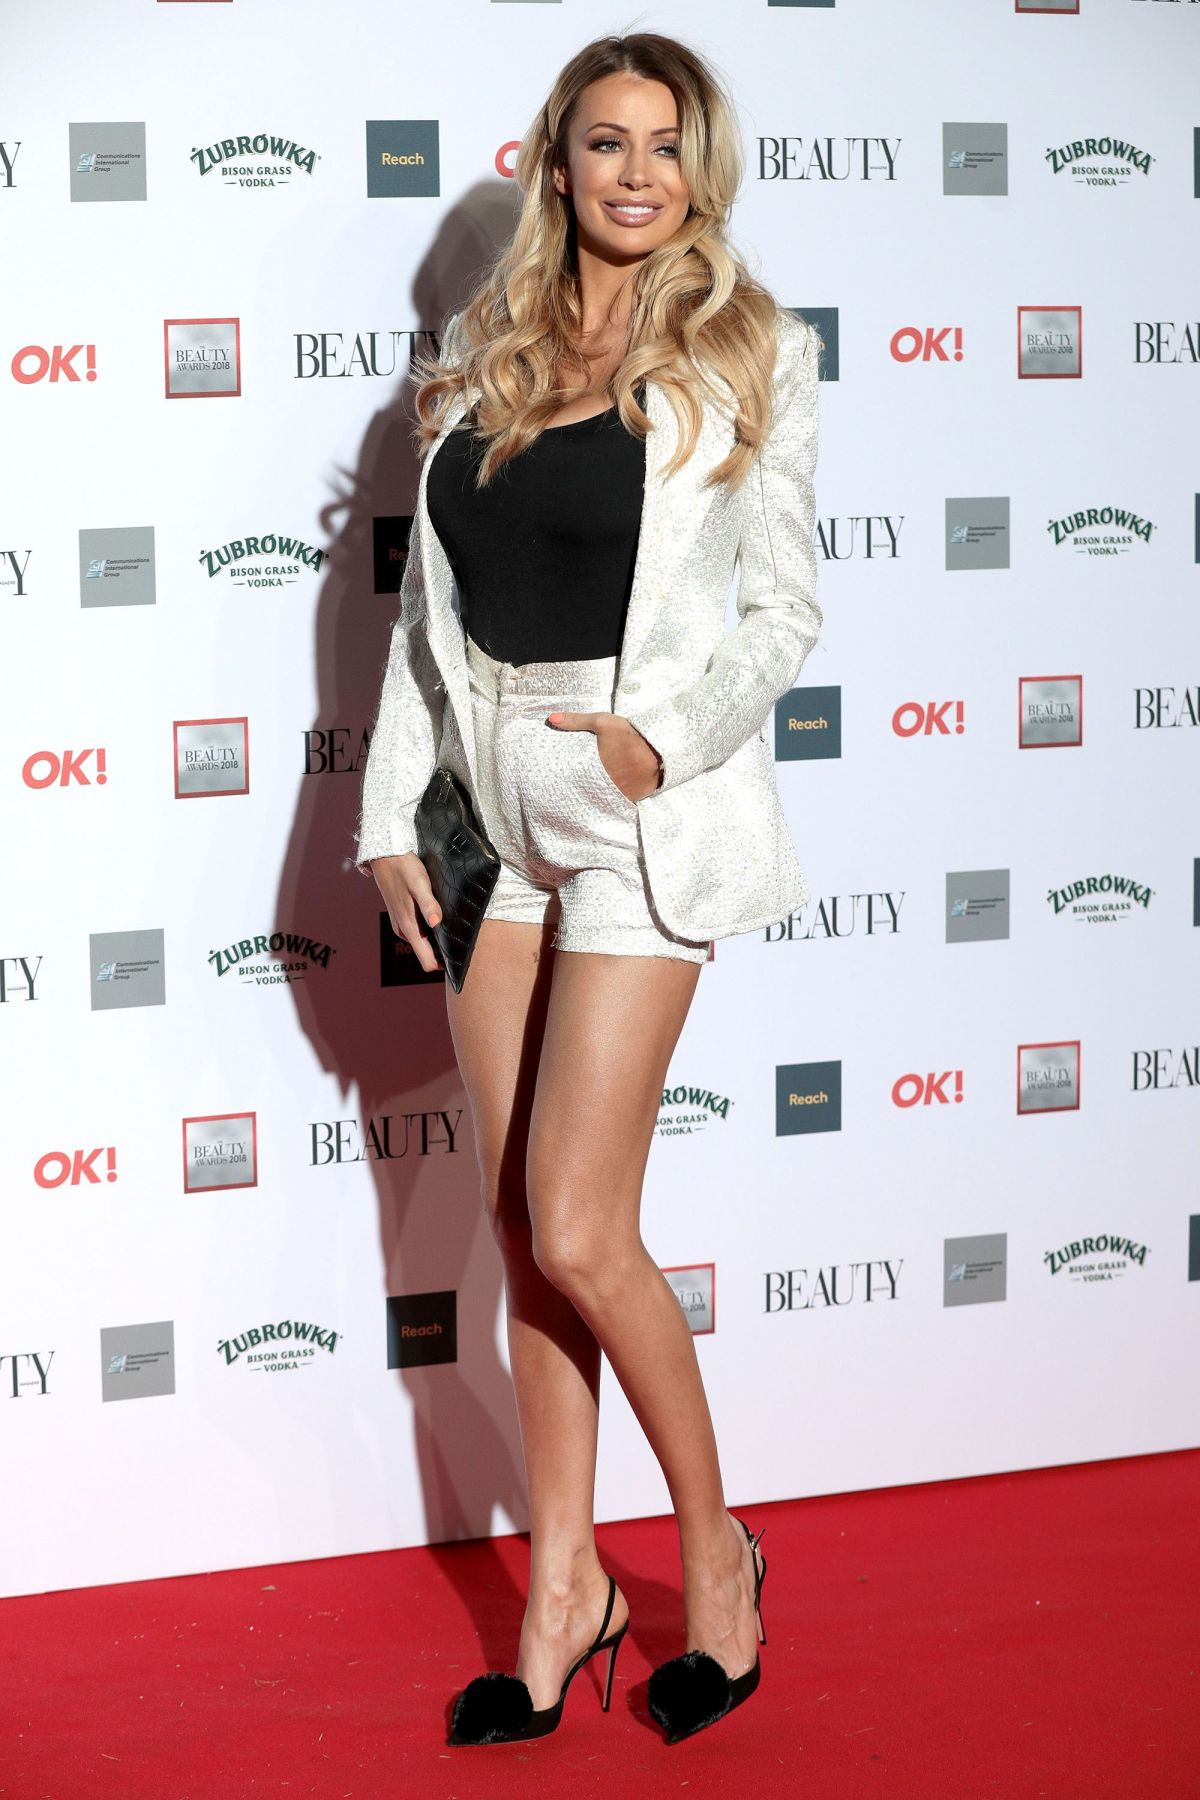 OLIVIA ATTWOOD at Beauty Awards 2018 in London 11/26/2018